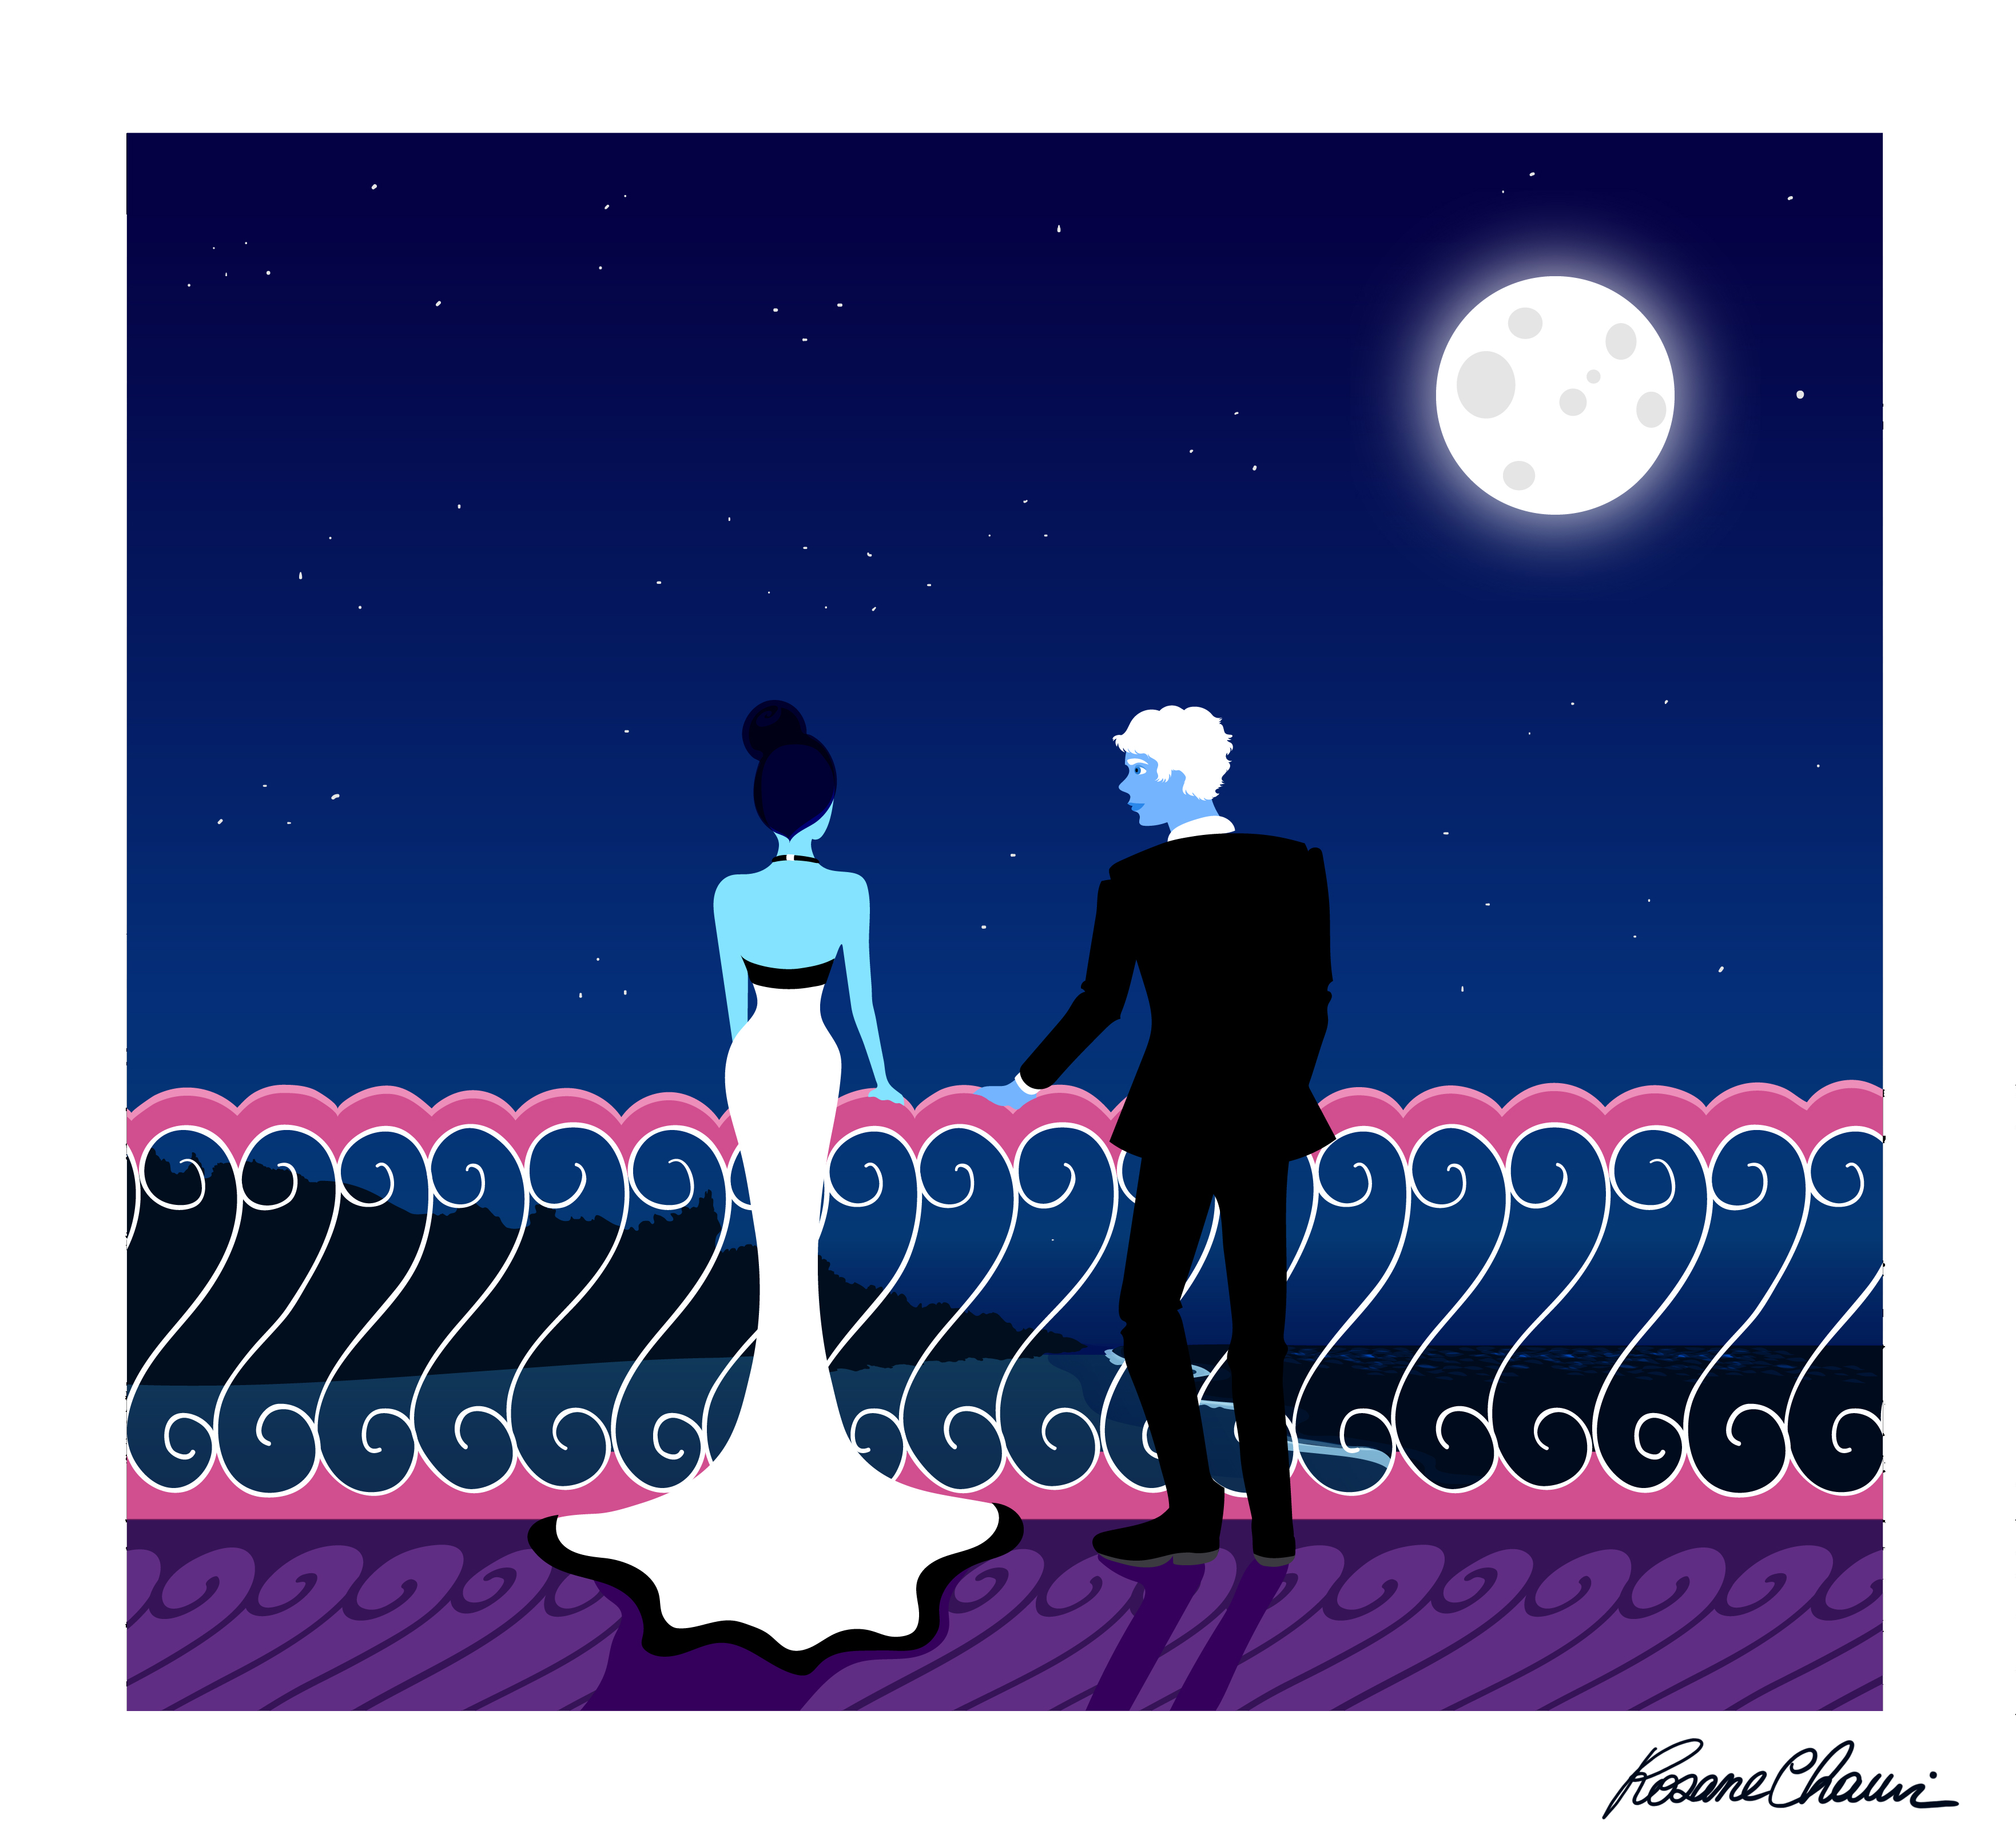 Moonlight gown rosane chawi mélodie bloo